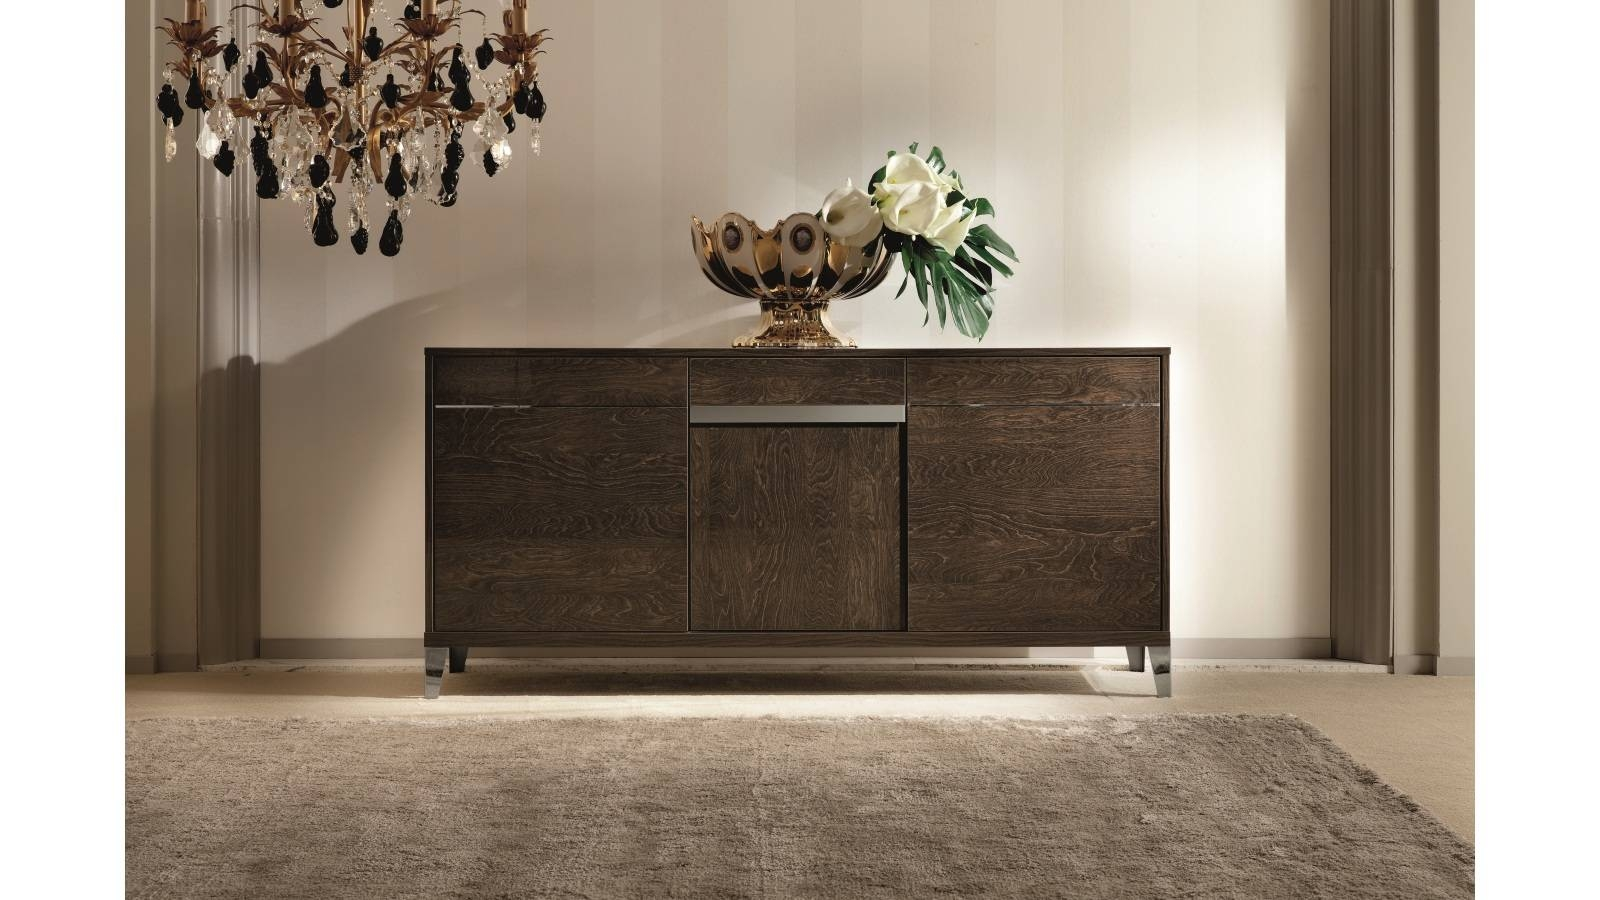 Sideboards That Will Work Great For Any Home! | Home & Decor Singapore in Singapore Sideboards And Buffets (Image 14 of 15)